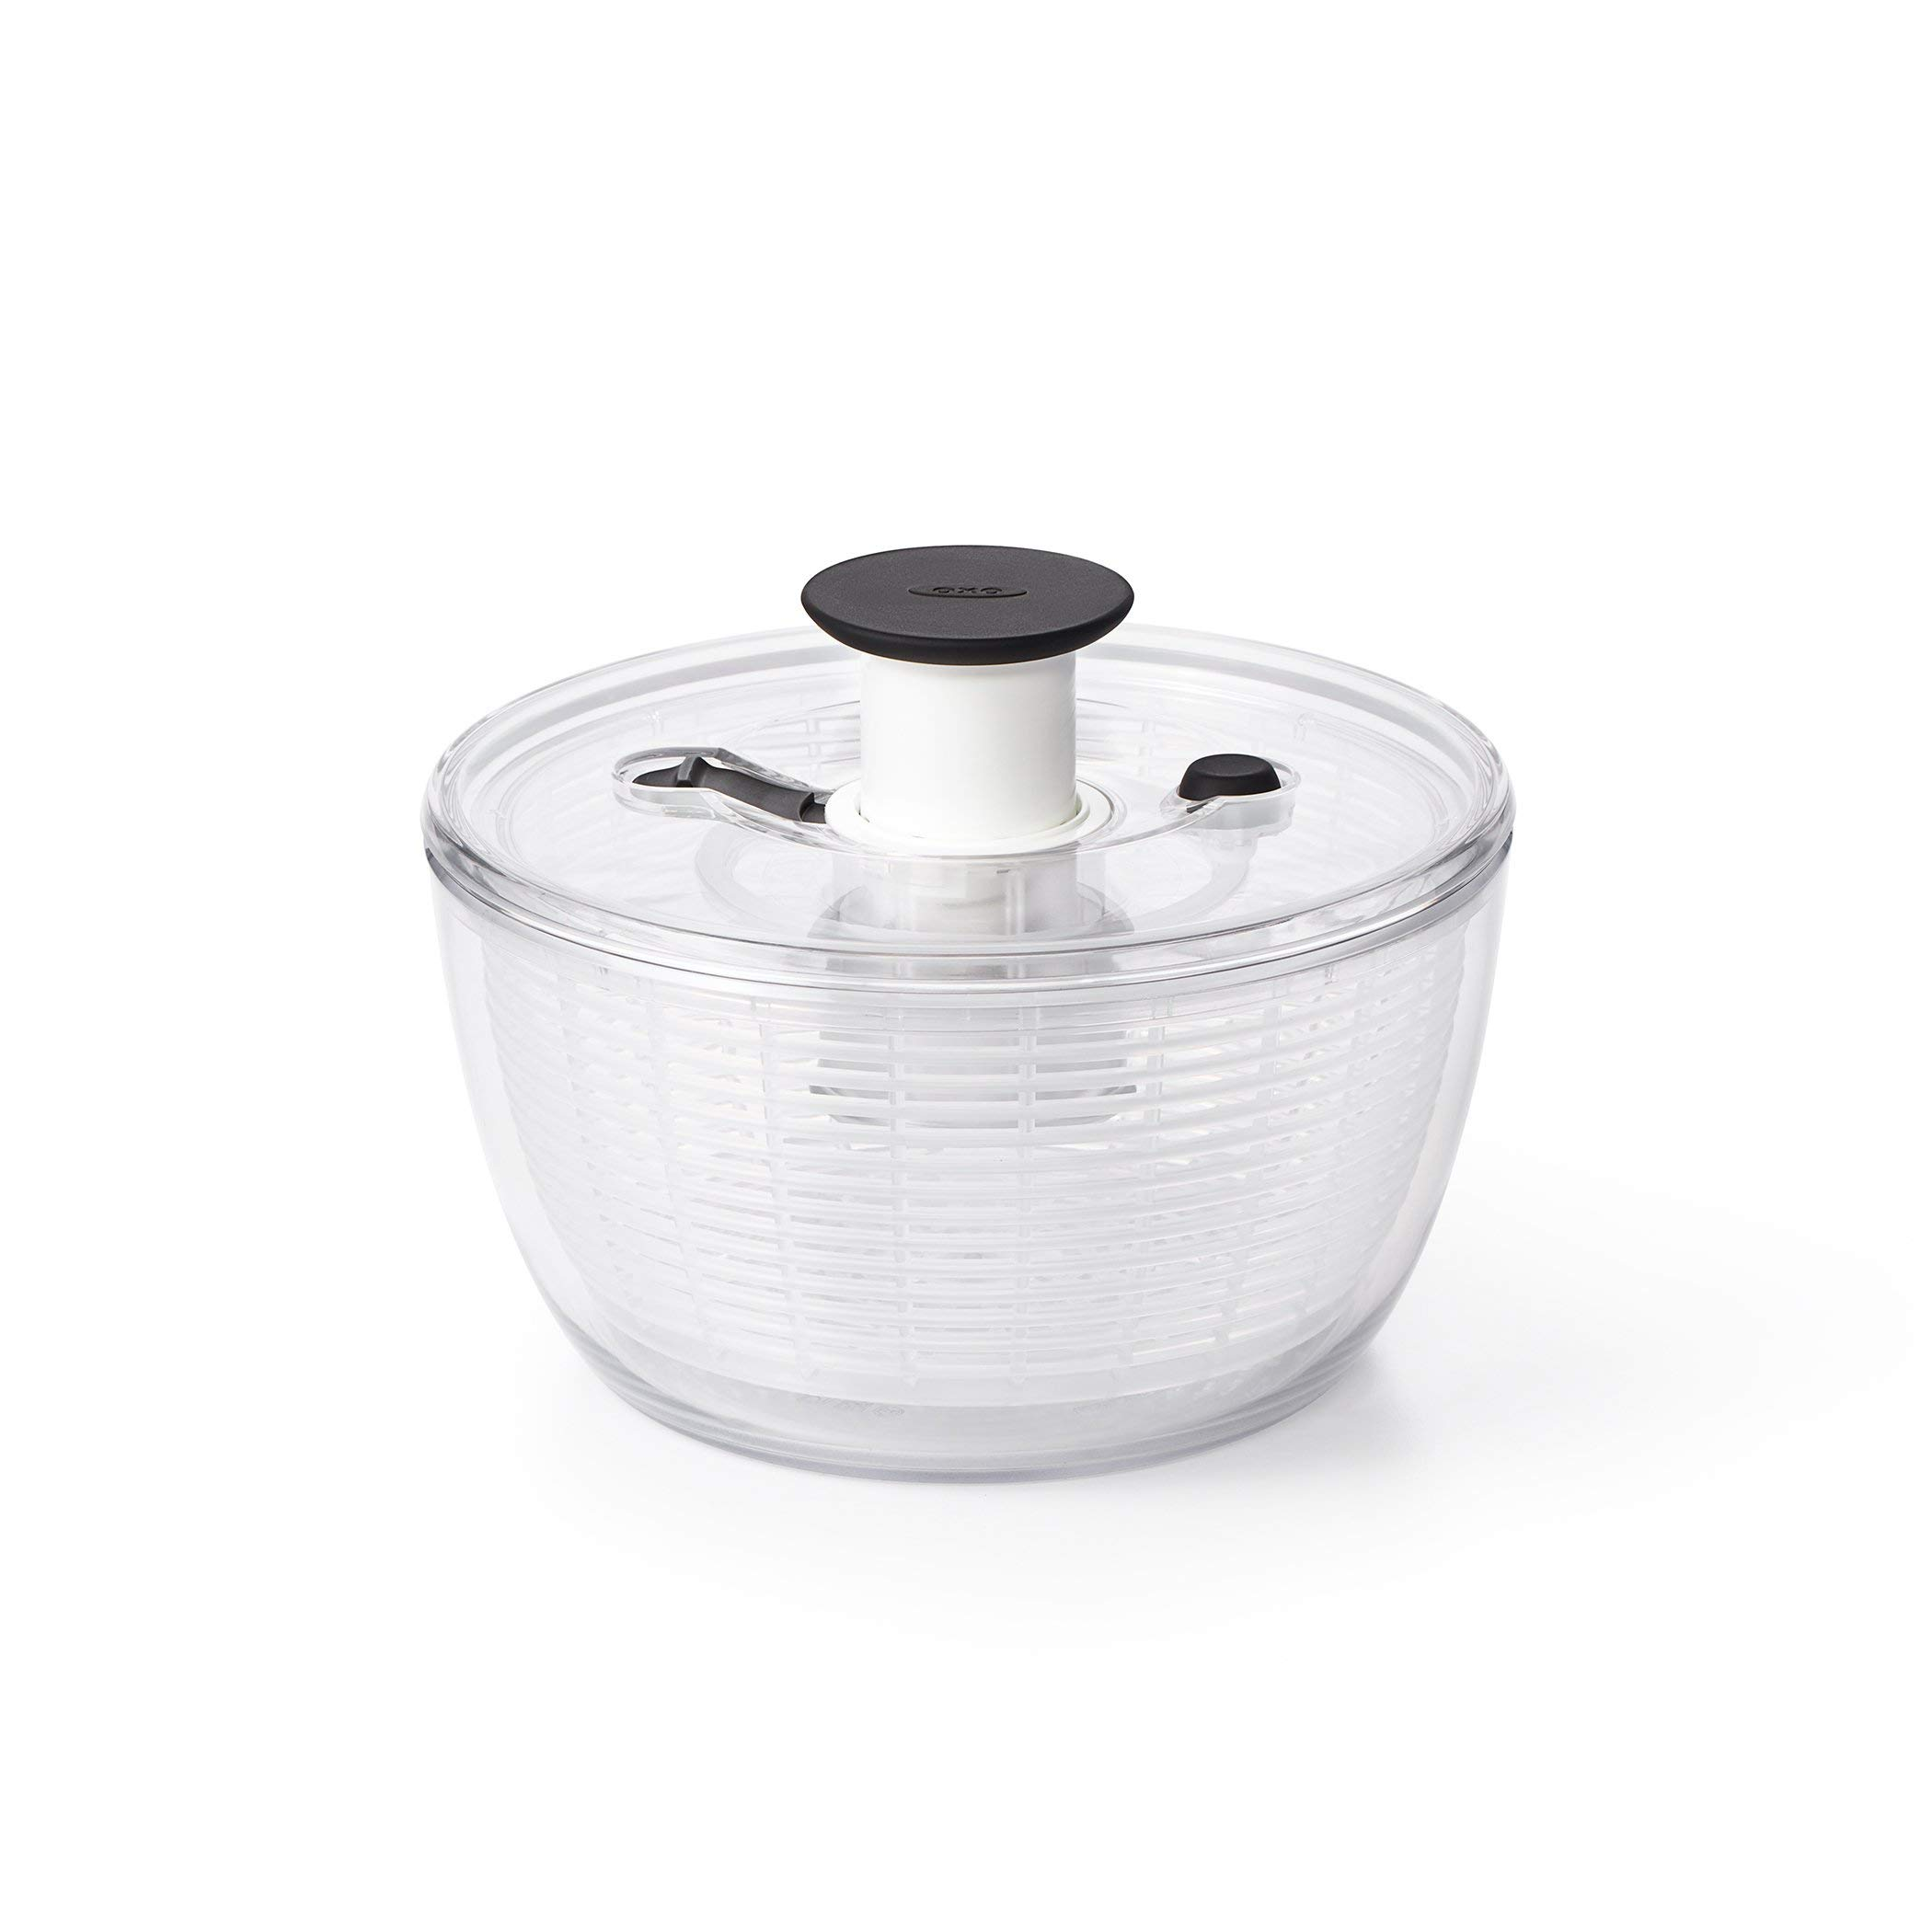 OXO Good Grips Little Salad and Herb Spinner, Clear by OXO